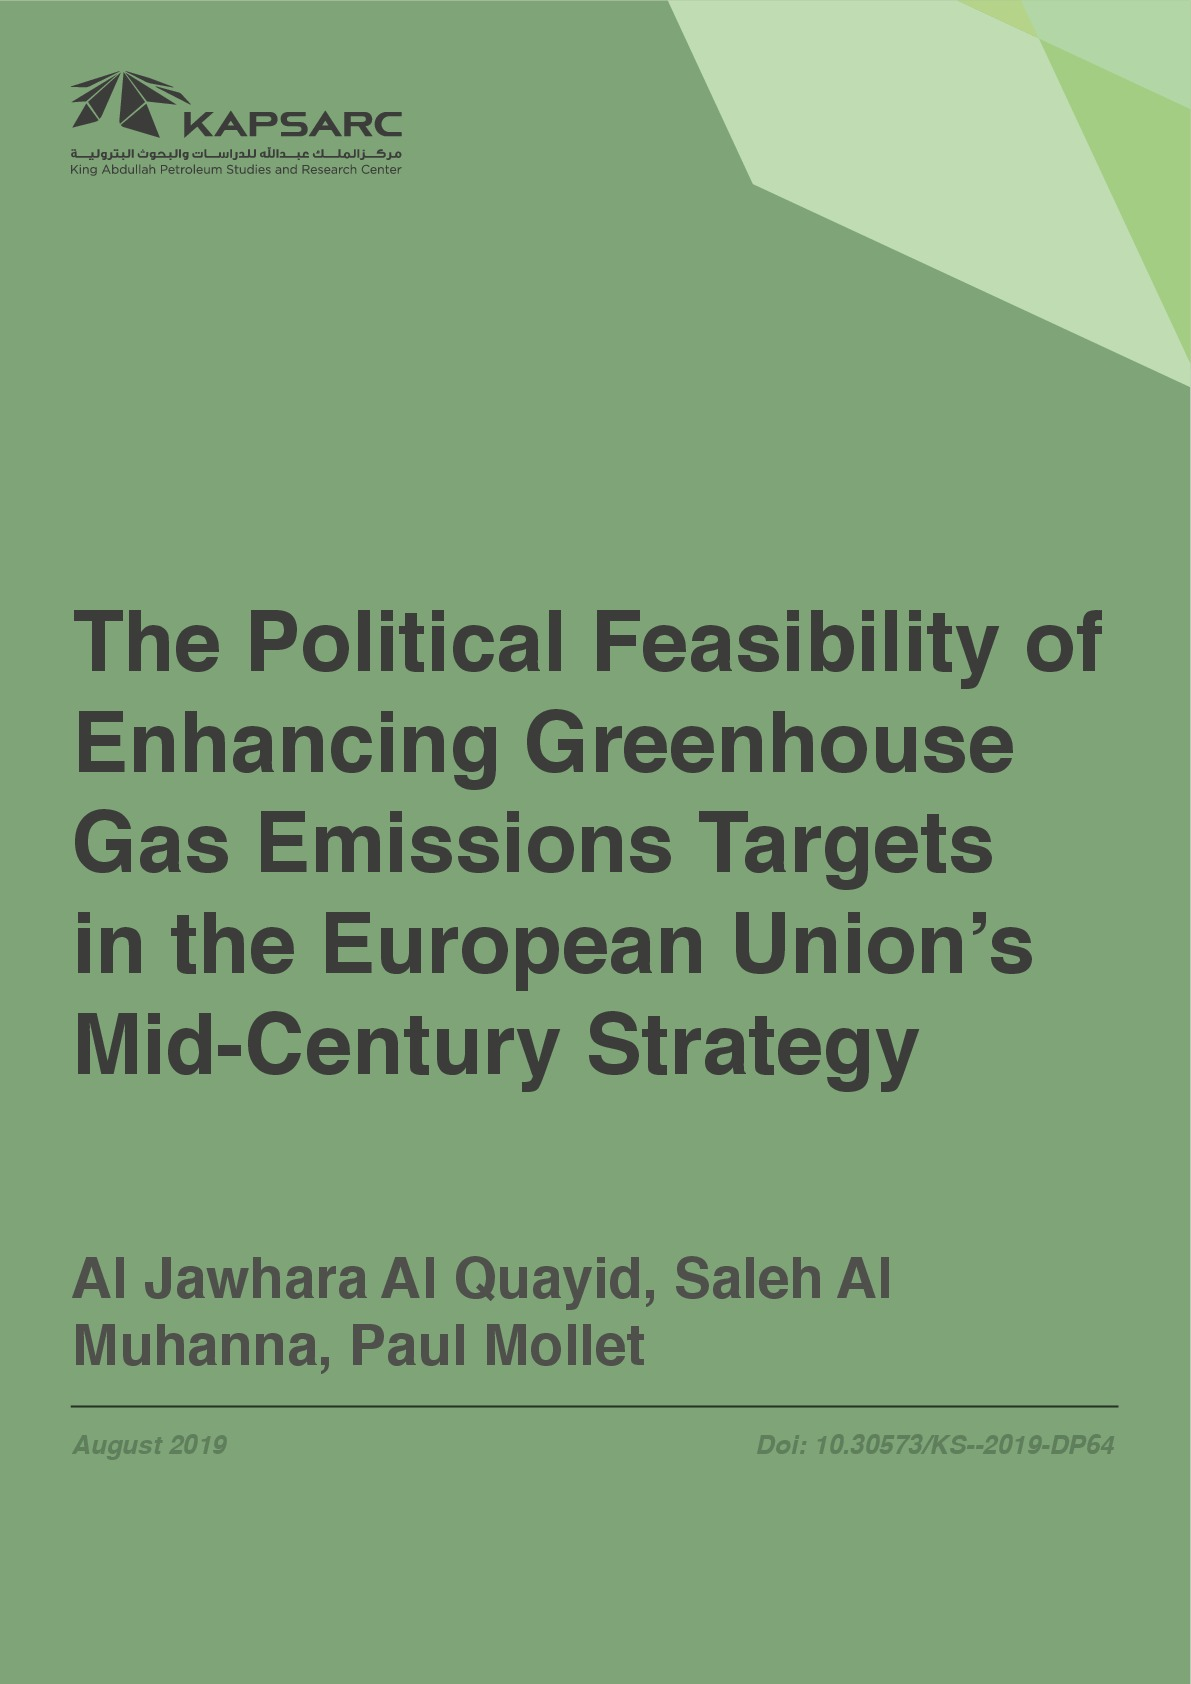 The Political Feasibility of Enhancing Greenhouse Gas Emissions Targets in the European Union's Mid-Century Strategy